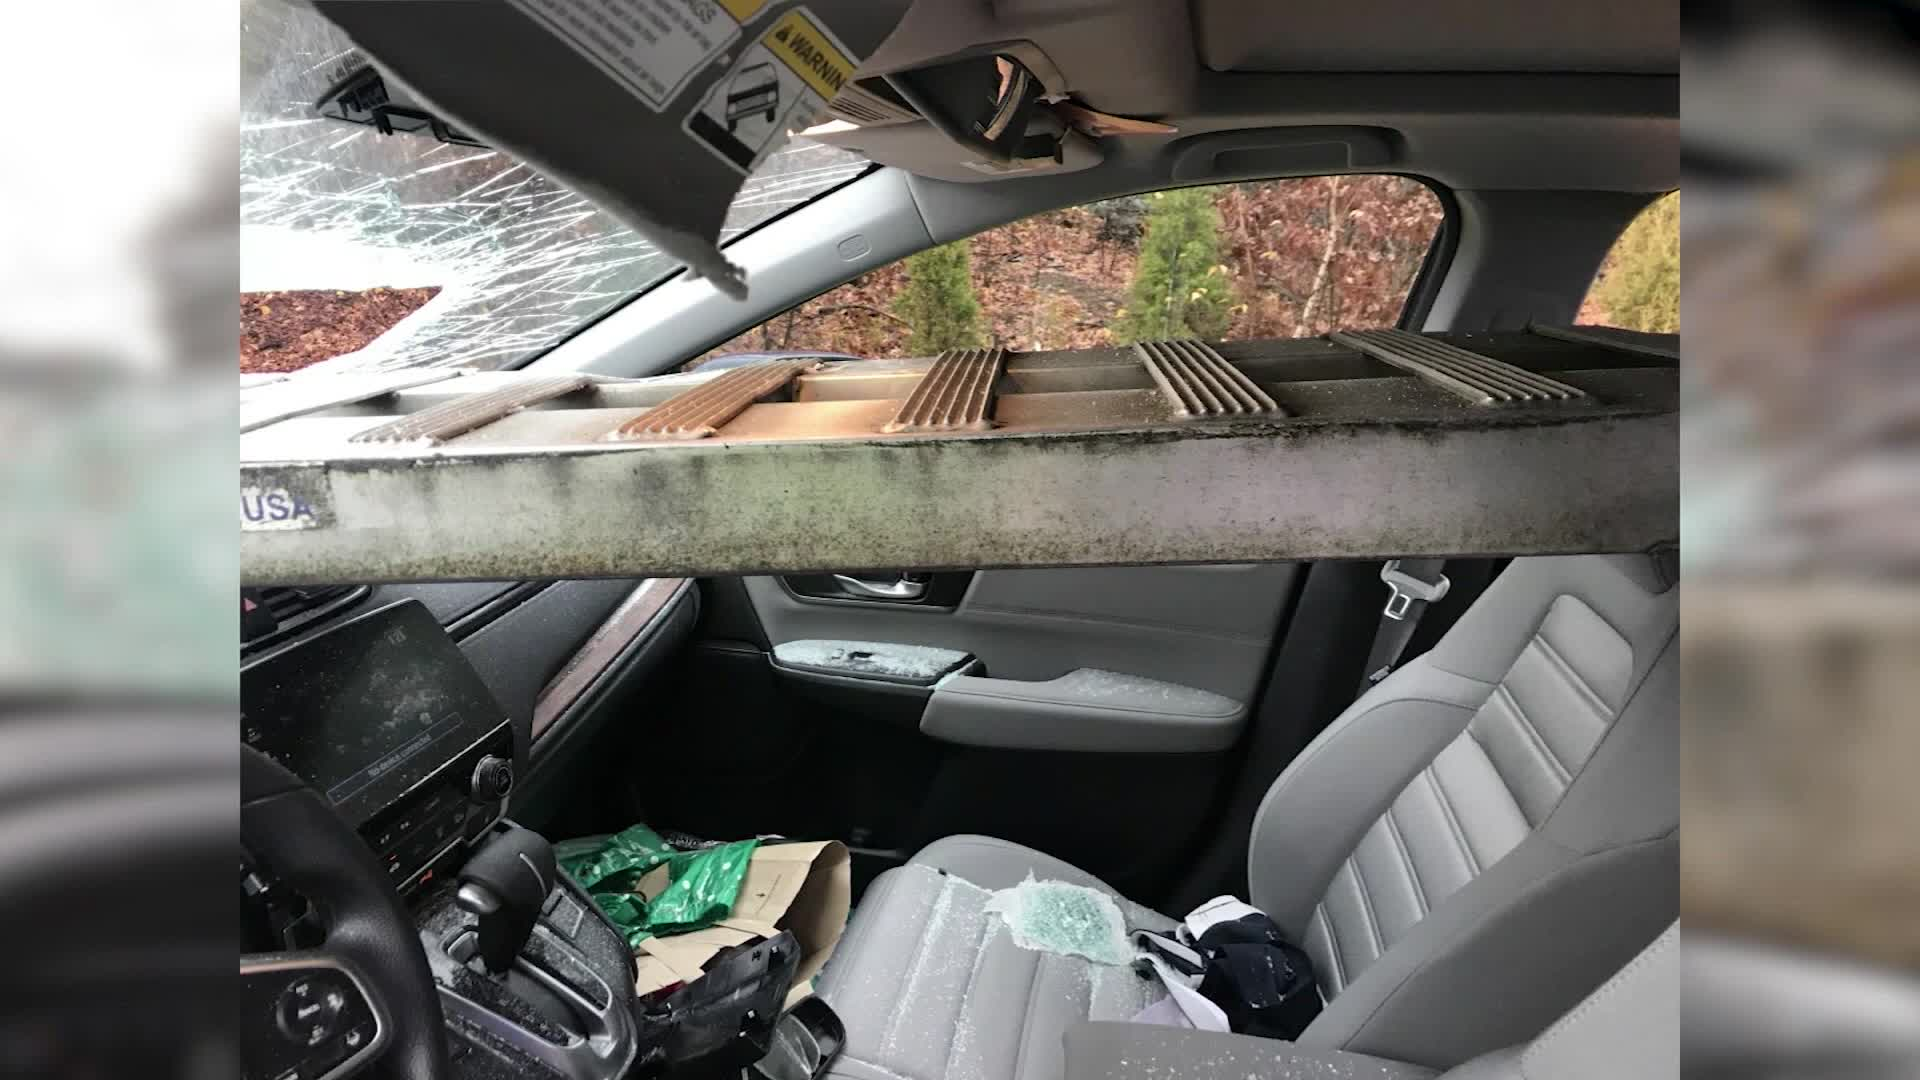 Wondrous Ramp Crashes Through Womans Windshield On Interstate Andrewgaddart Wooden Chair Designs For Living Room Andrewgaddartcom